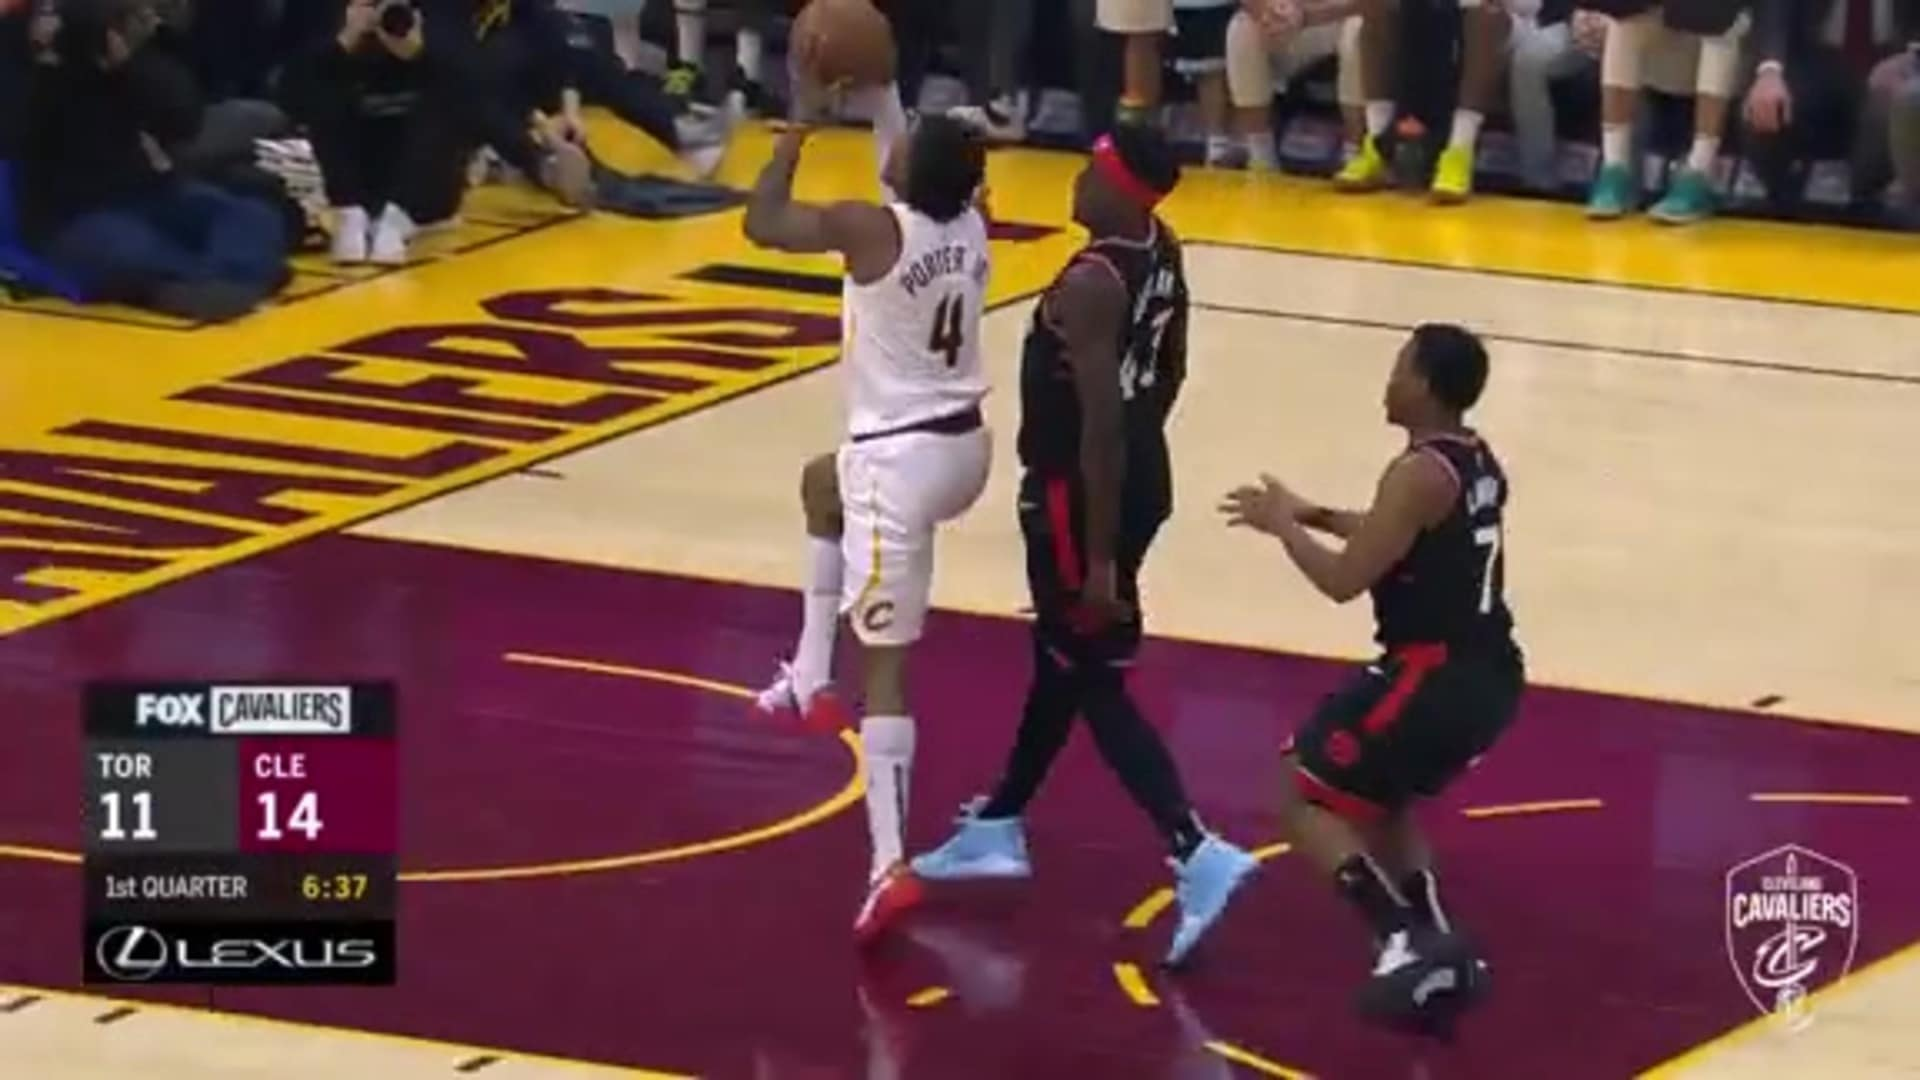 Cavs Steal & Score in First Frame